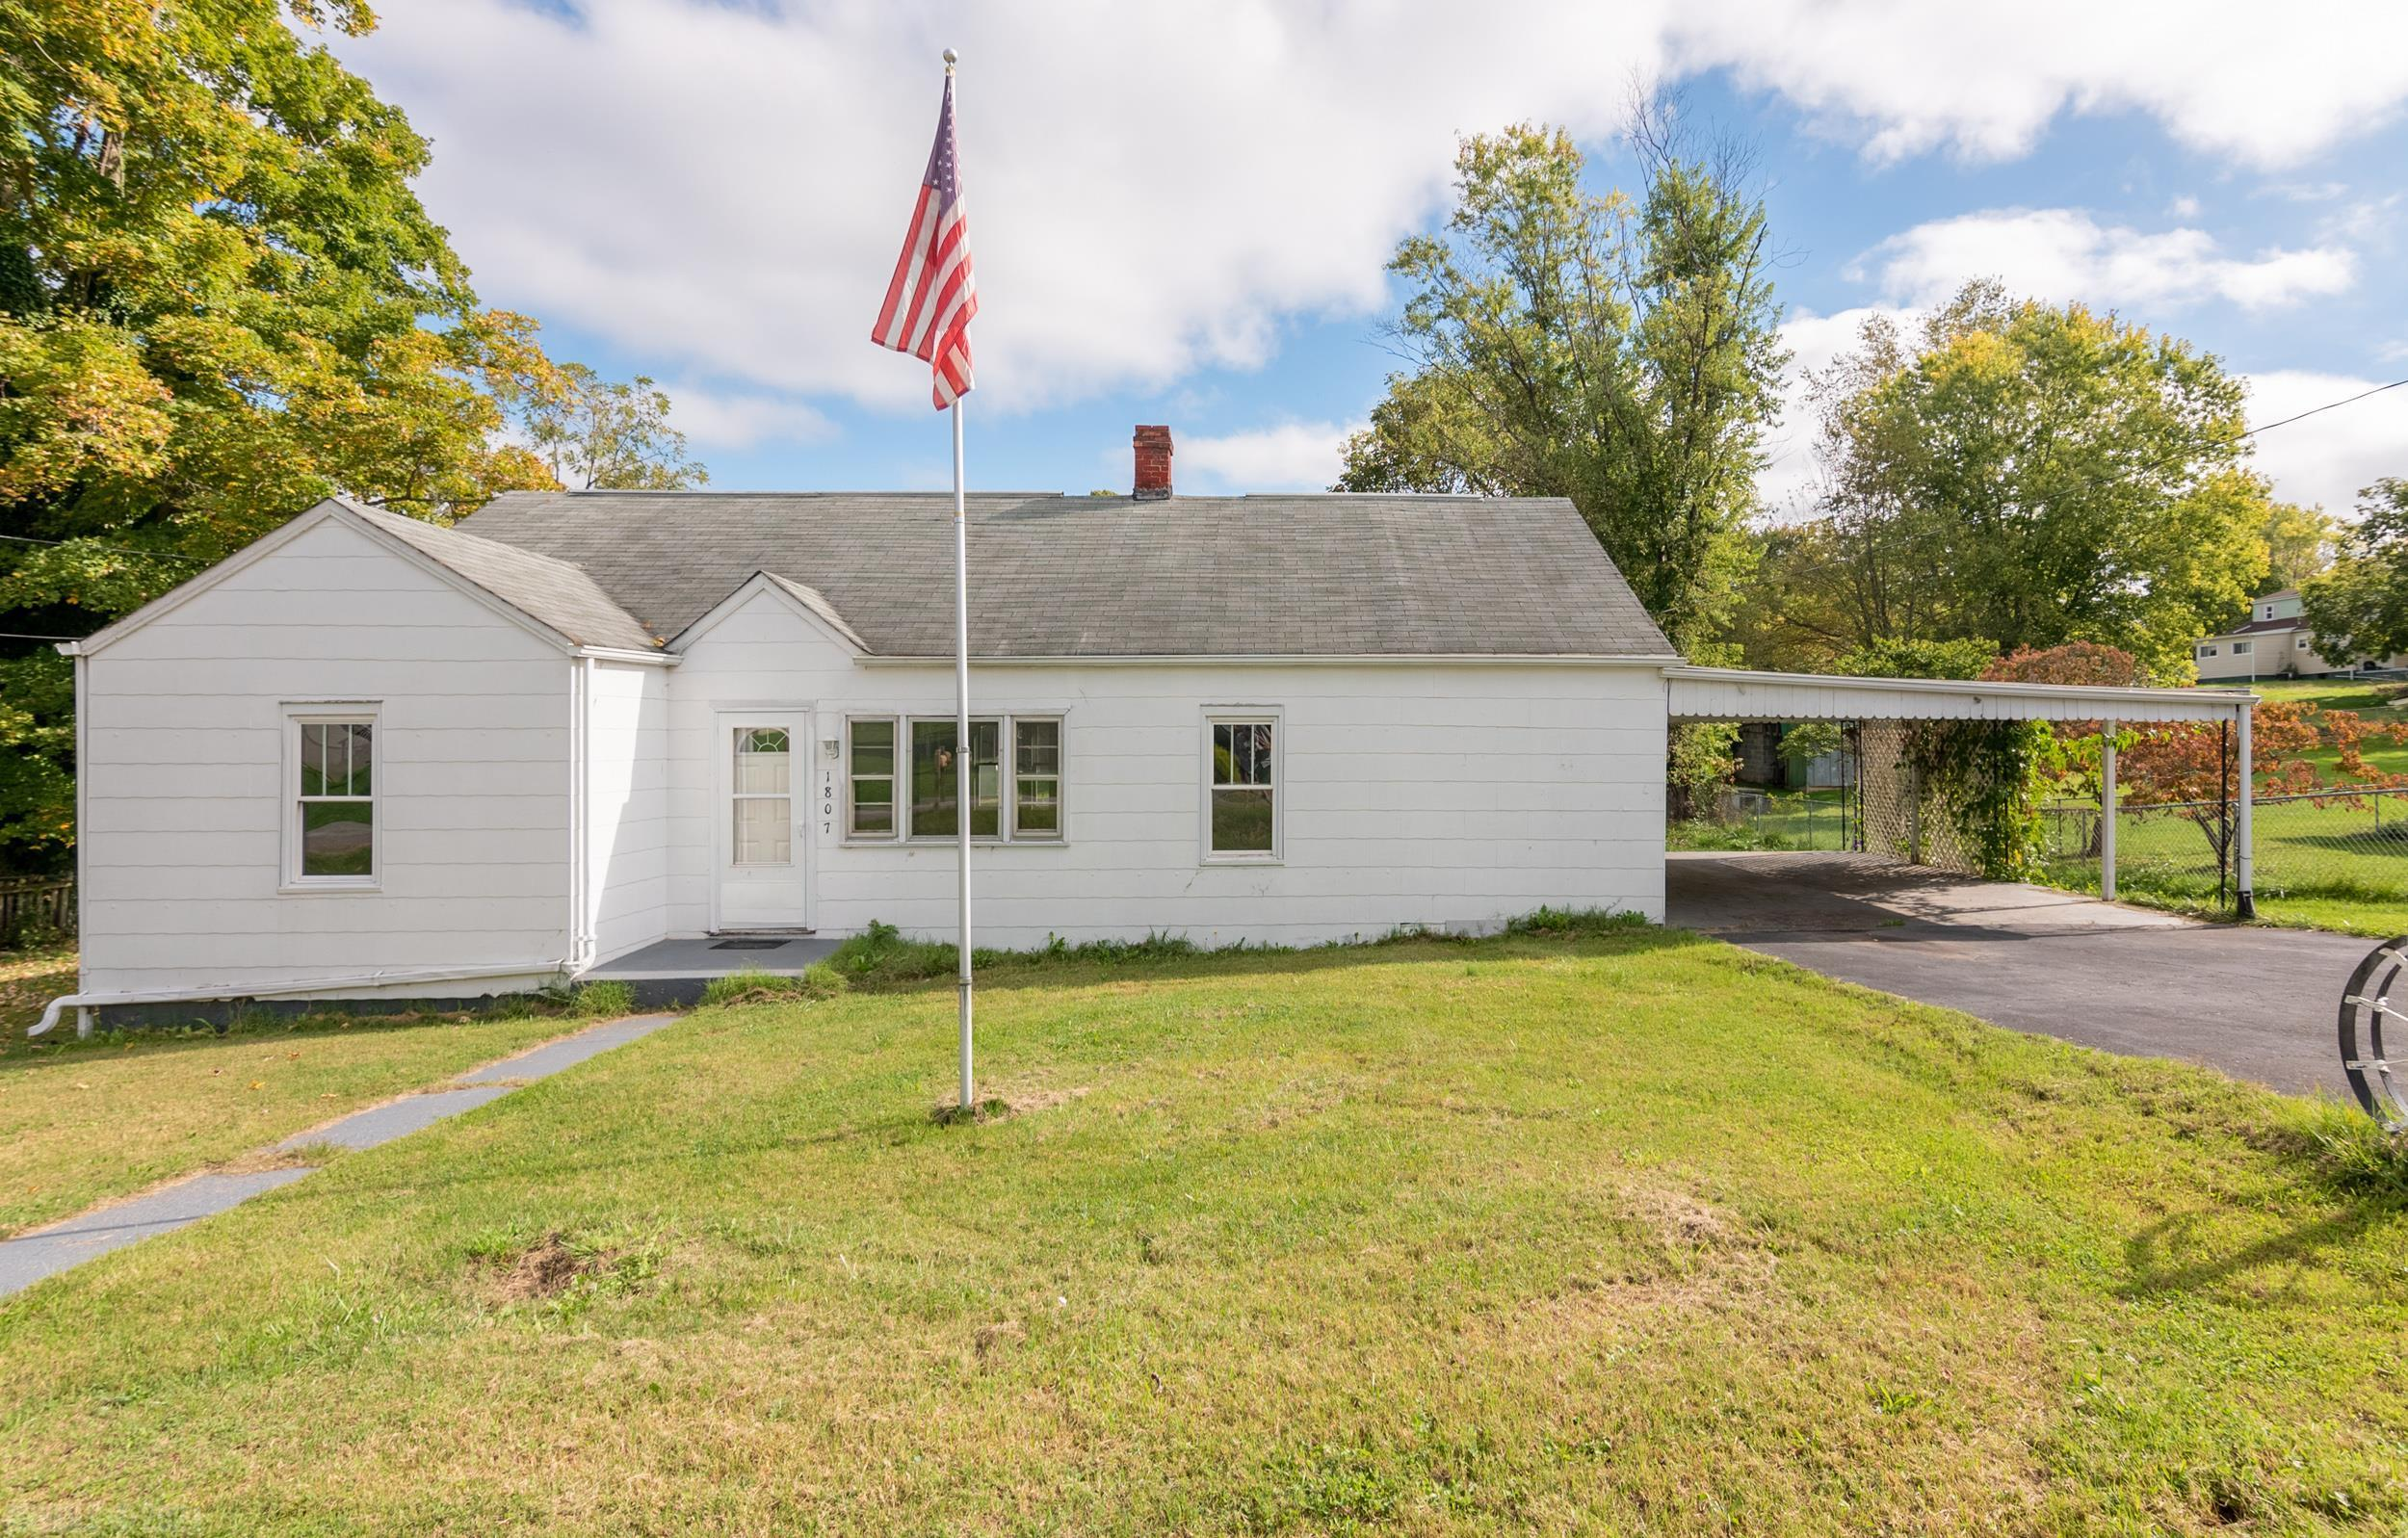 Investor special with flat, fenced yard in Radford! The work has already begun with a general cleanout, plumbing repair, and a new sump pump in the basement. Hardwoods throughout just waiting for refinishing. Priced below tax assessed value. Sold as-is.